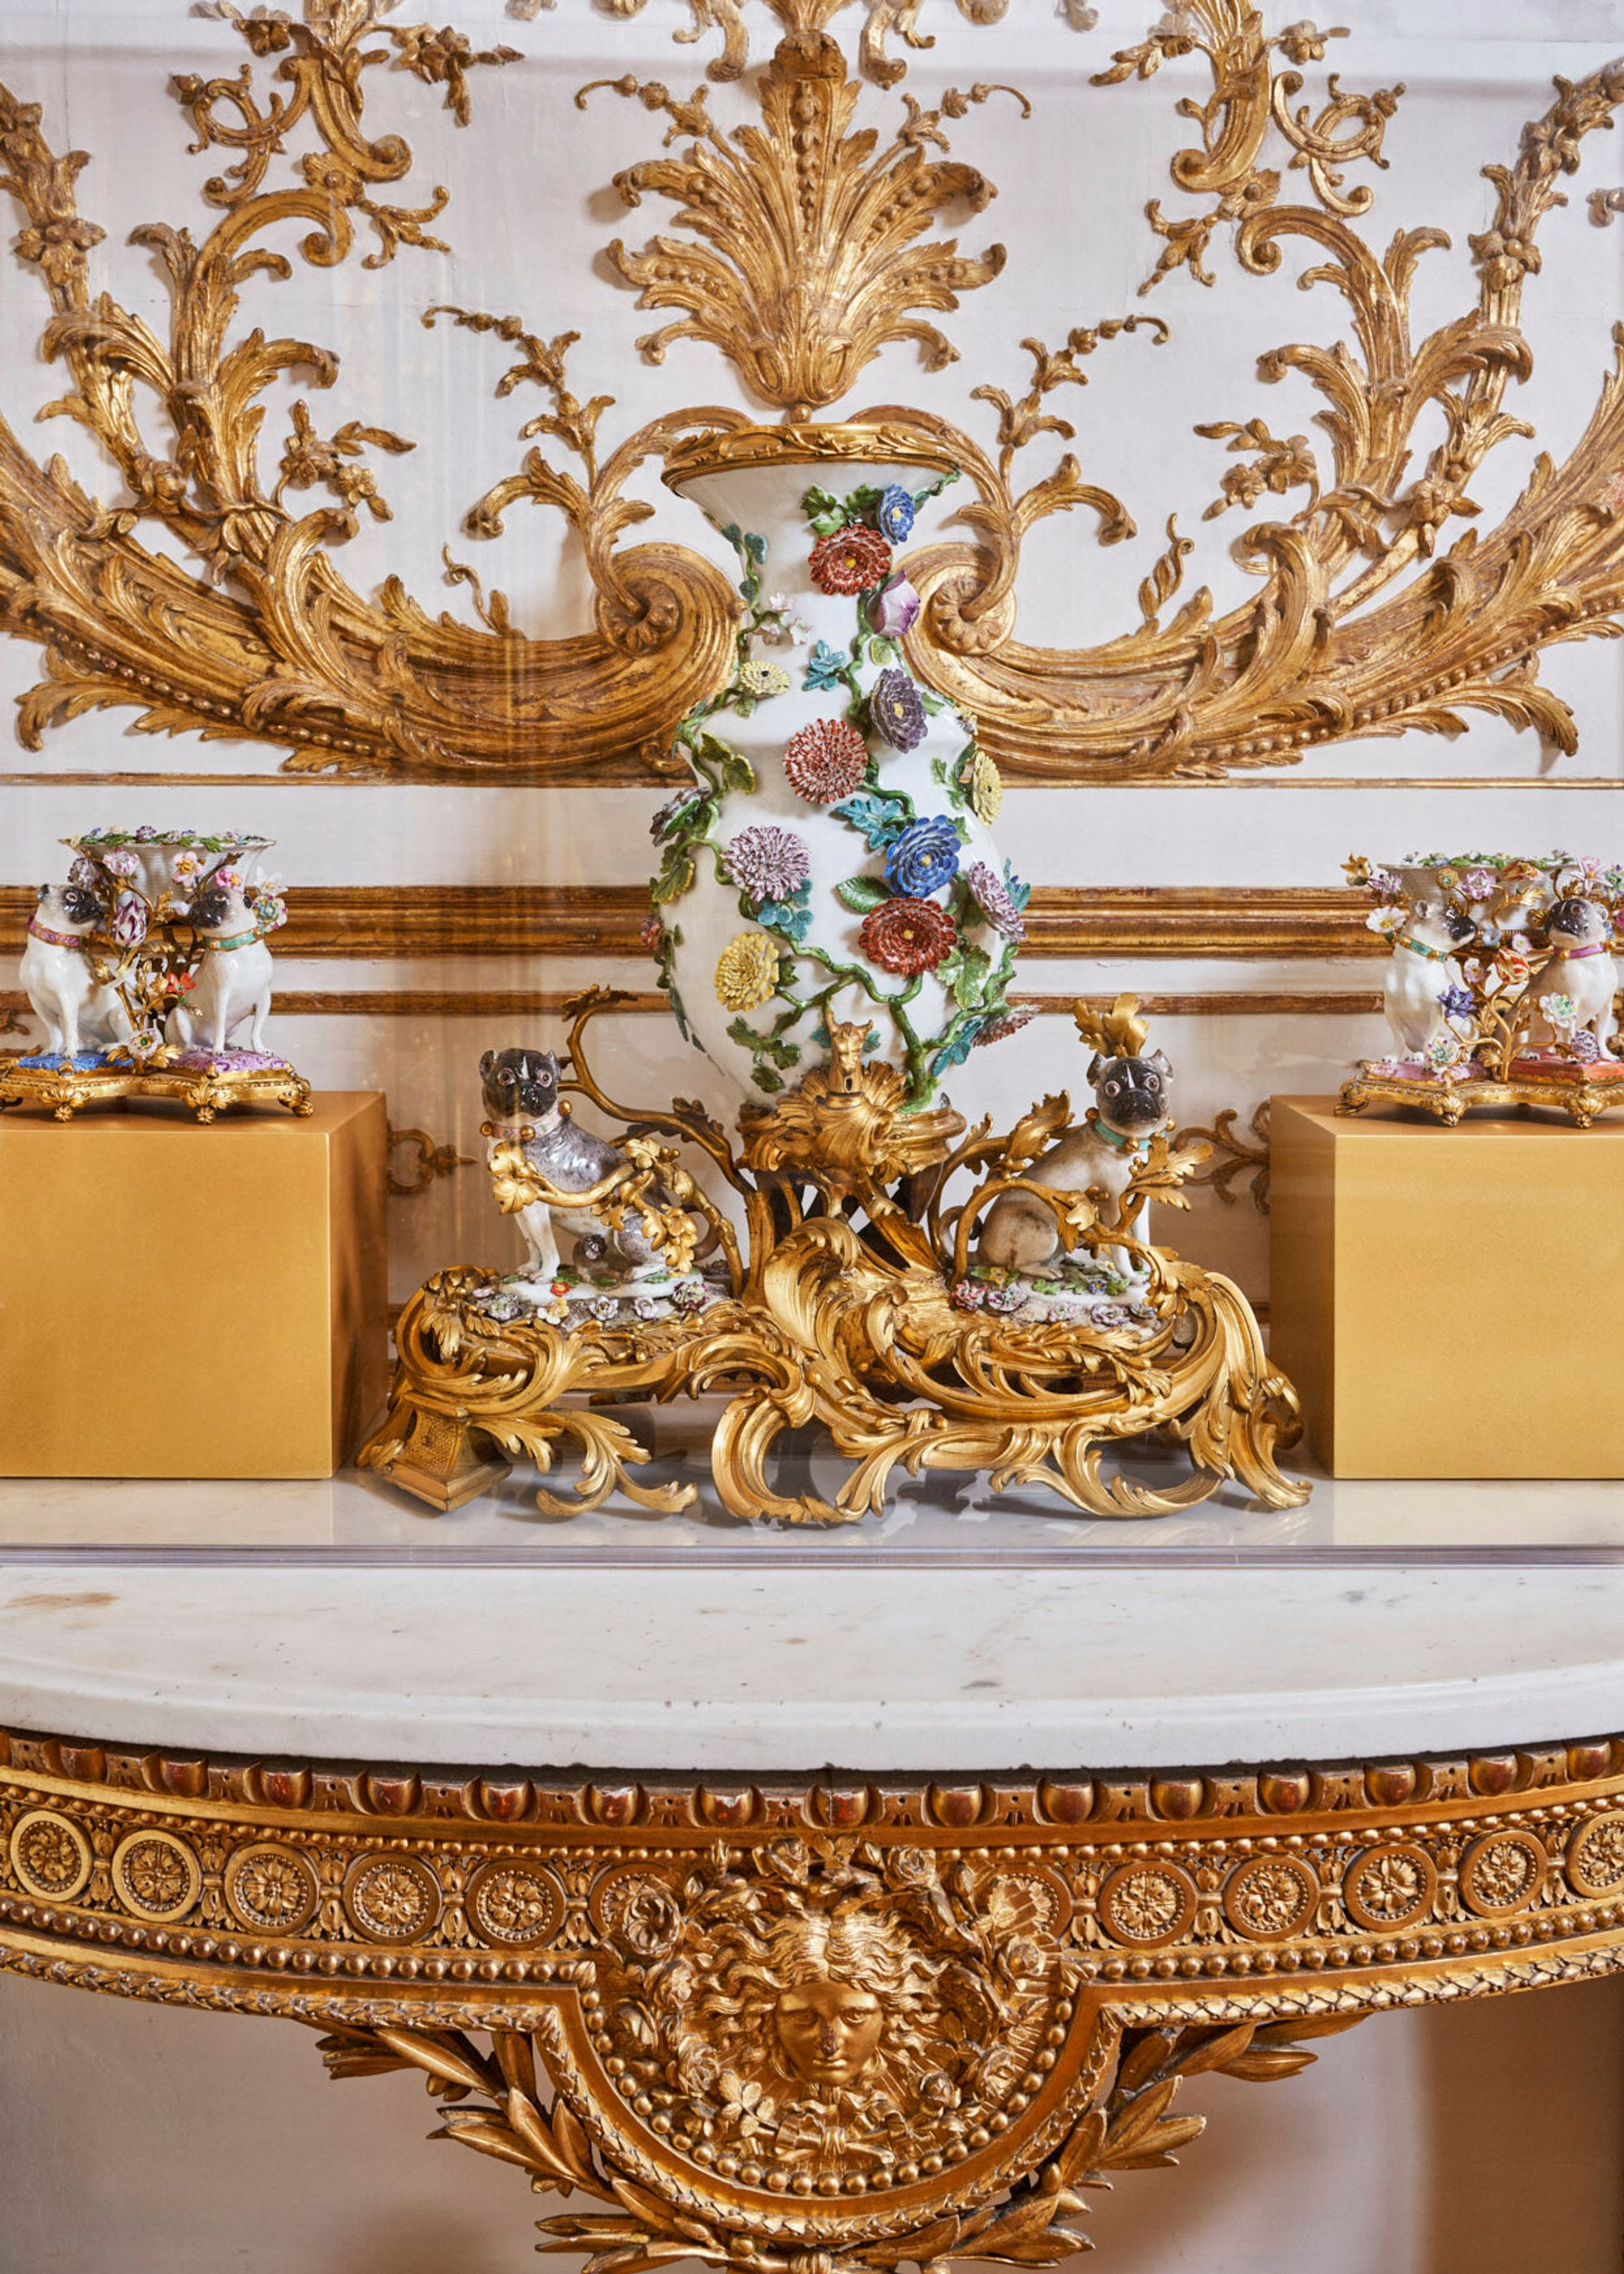 Project Image for Porcelain from Meissen and Chantilly